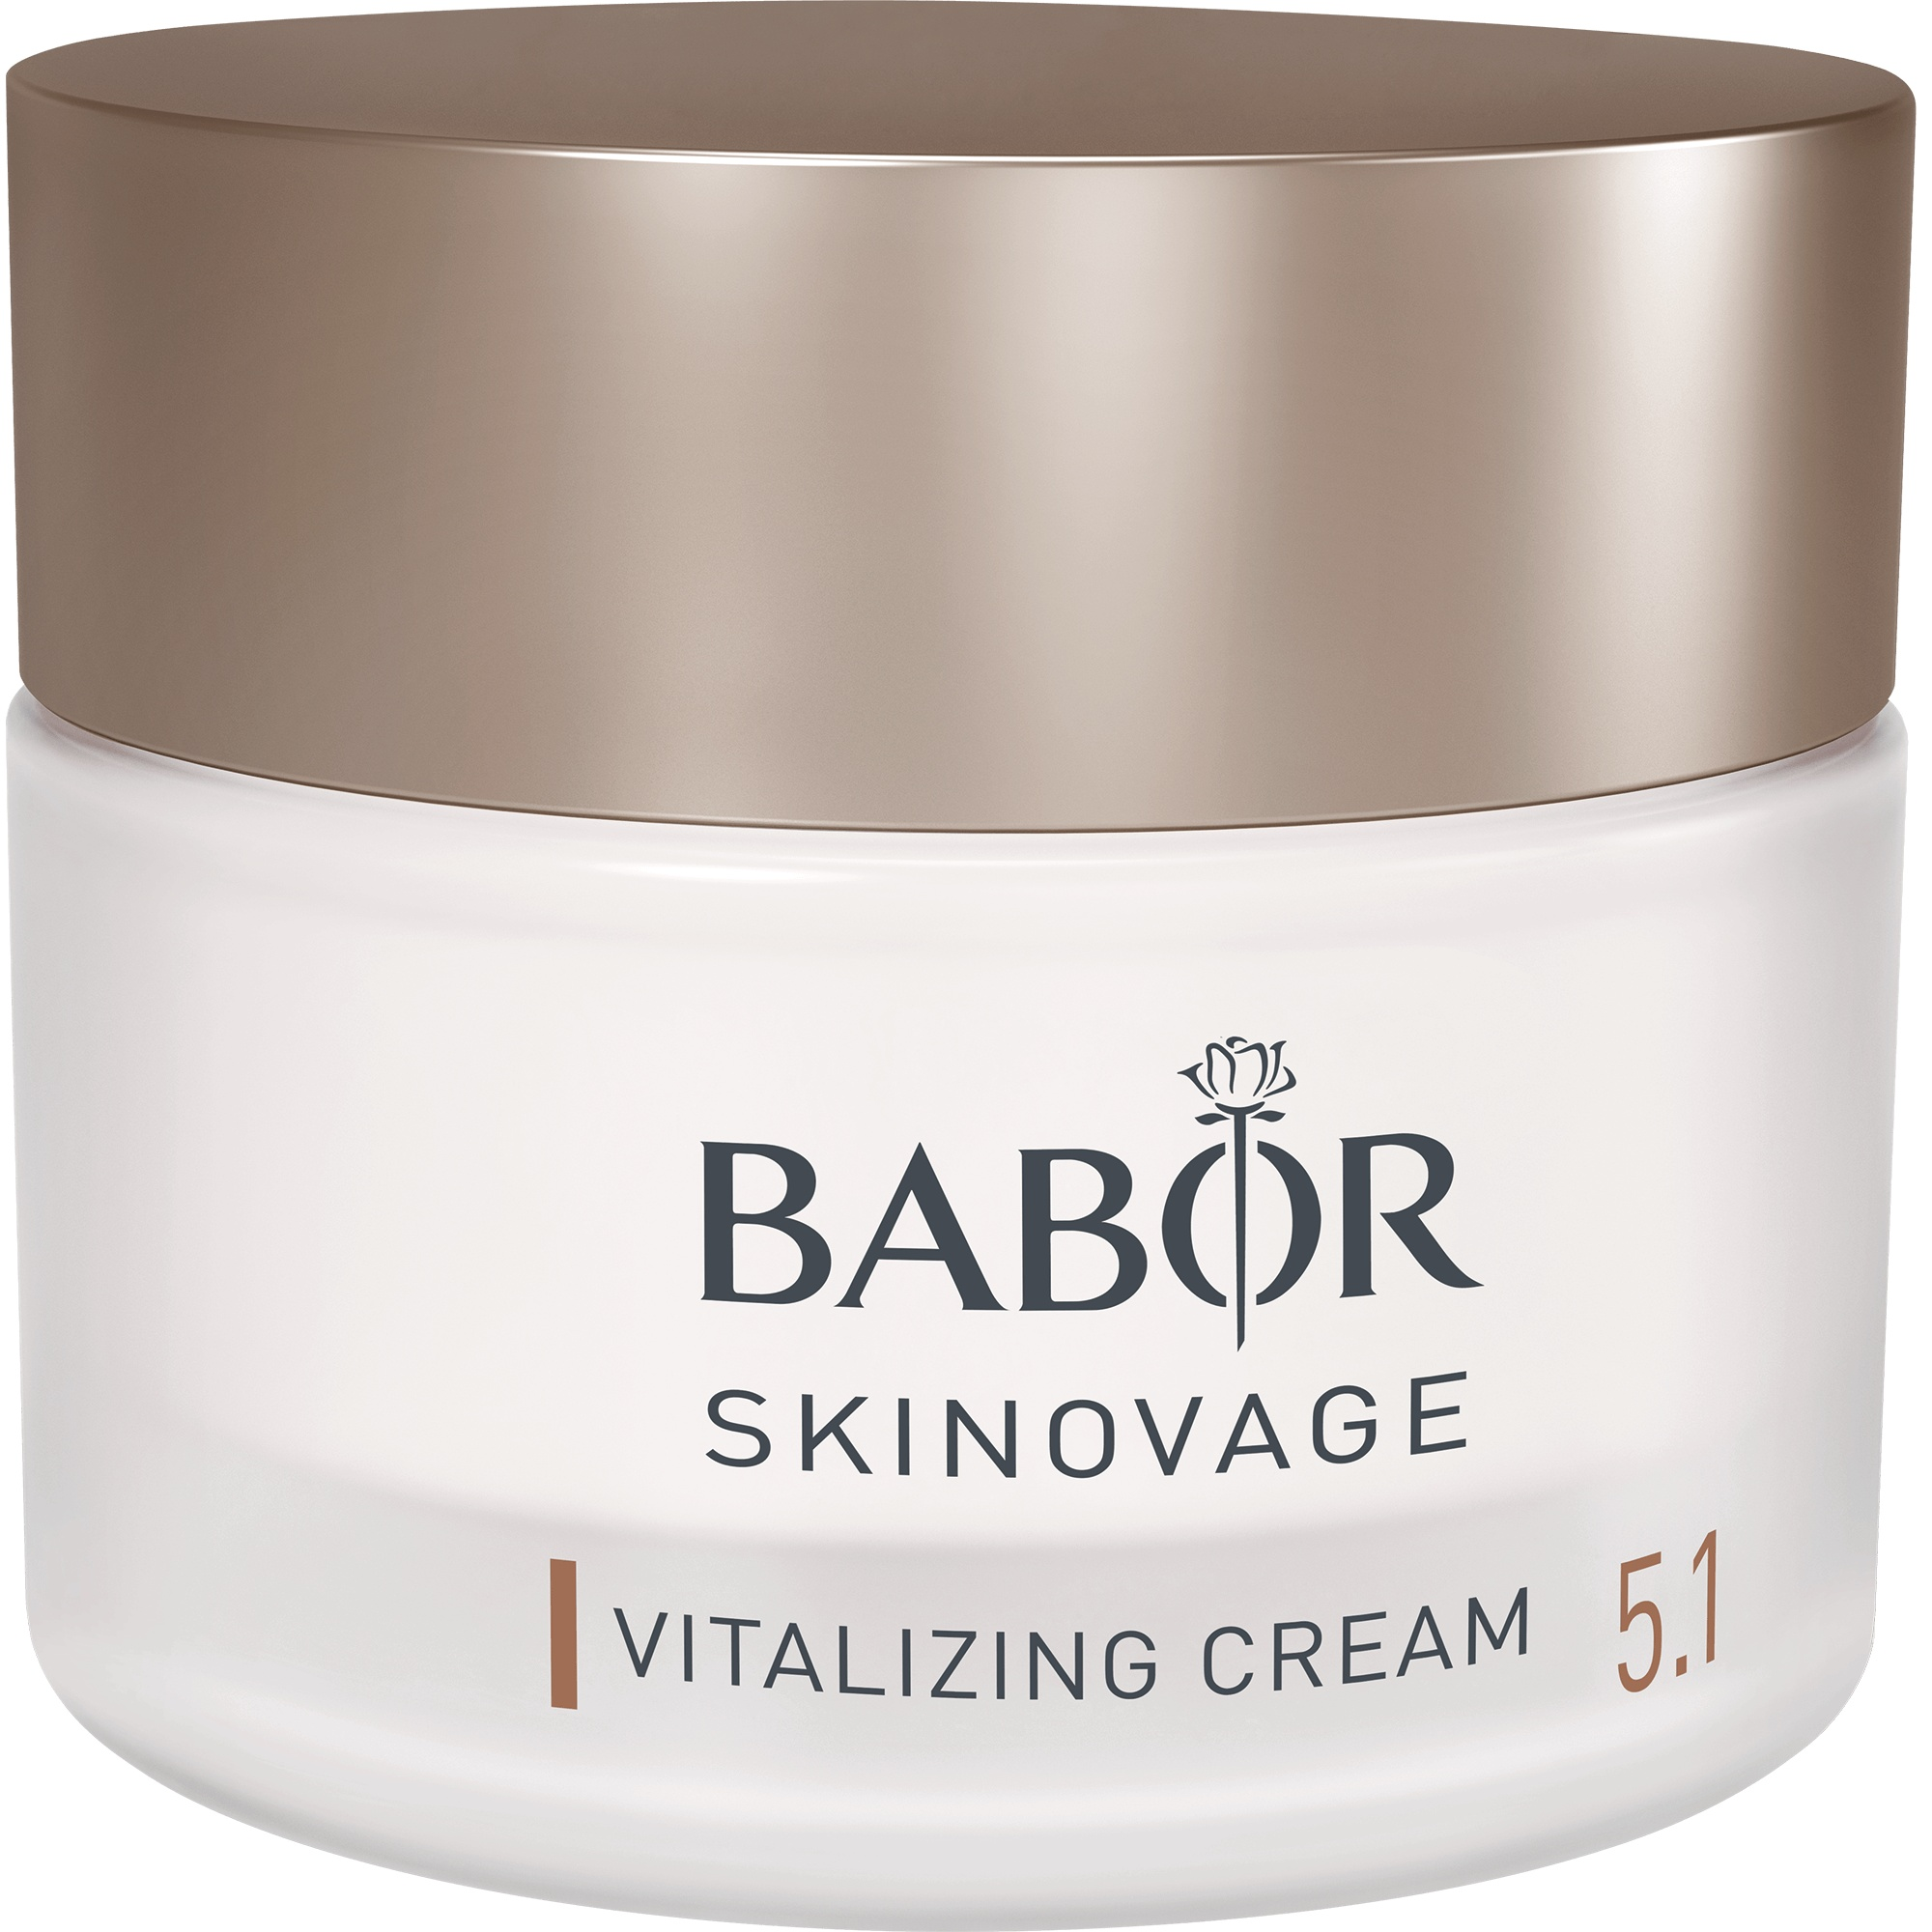 Skinovage Vitalizing Cream 50 ml